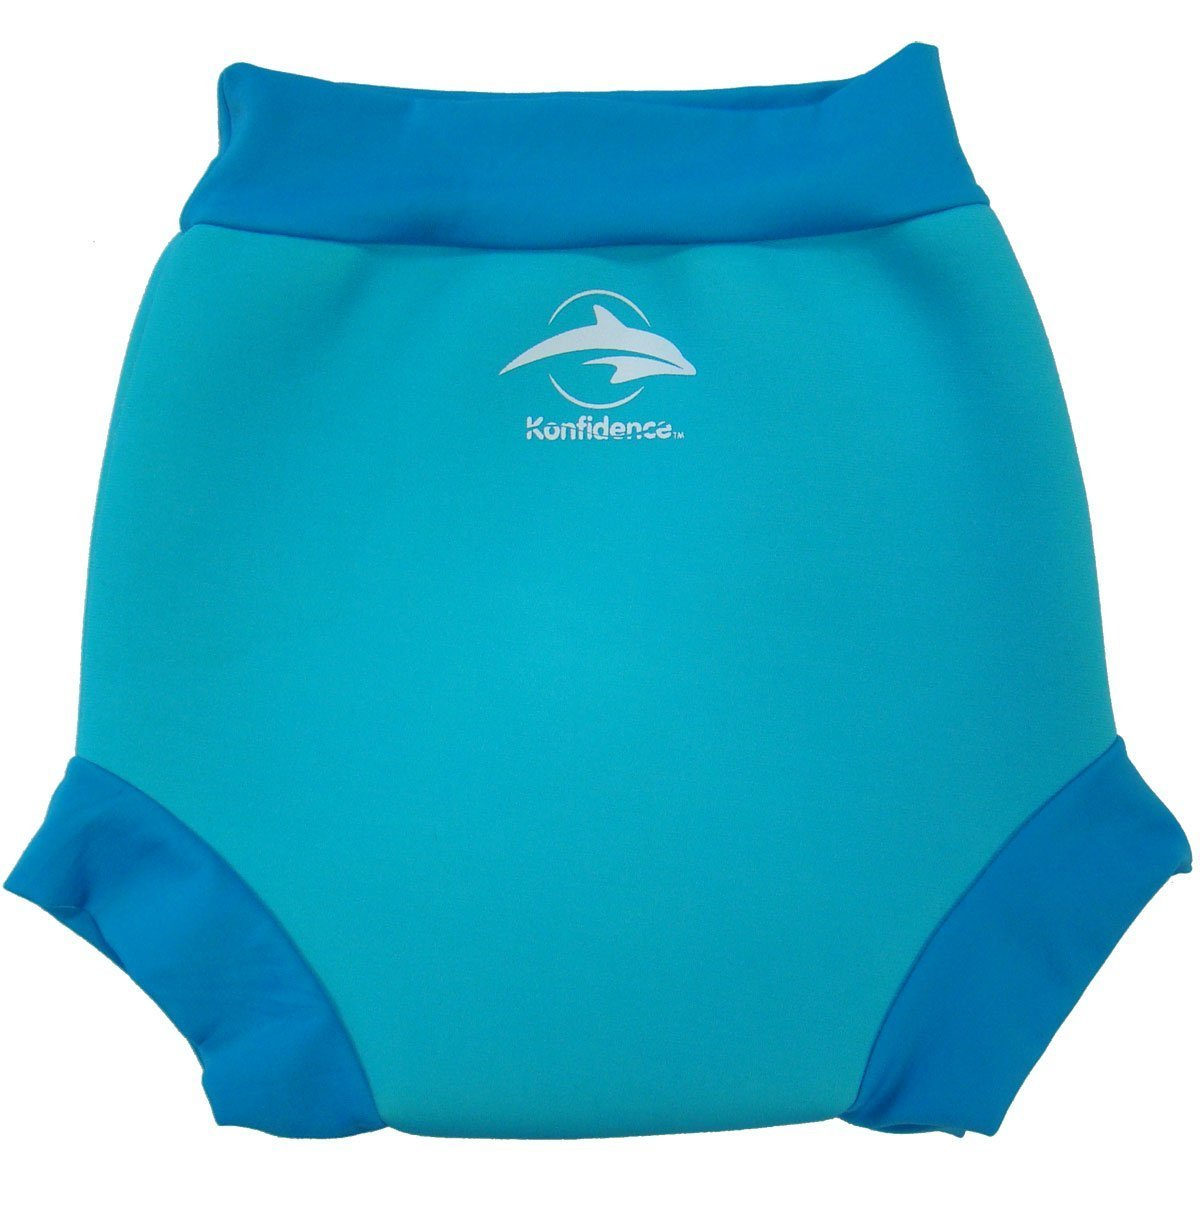 Konfidence Neonappy Swim Nappy Cover Buy Online In Guernsey Konfidence Products In Guernsey See Prices Reviews And Free Delivery Over 50 00 Desertcart